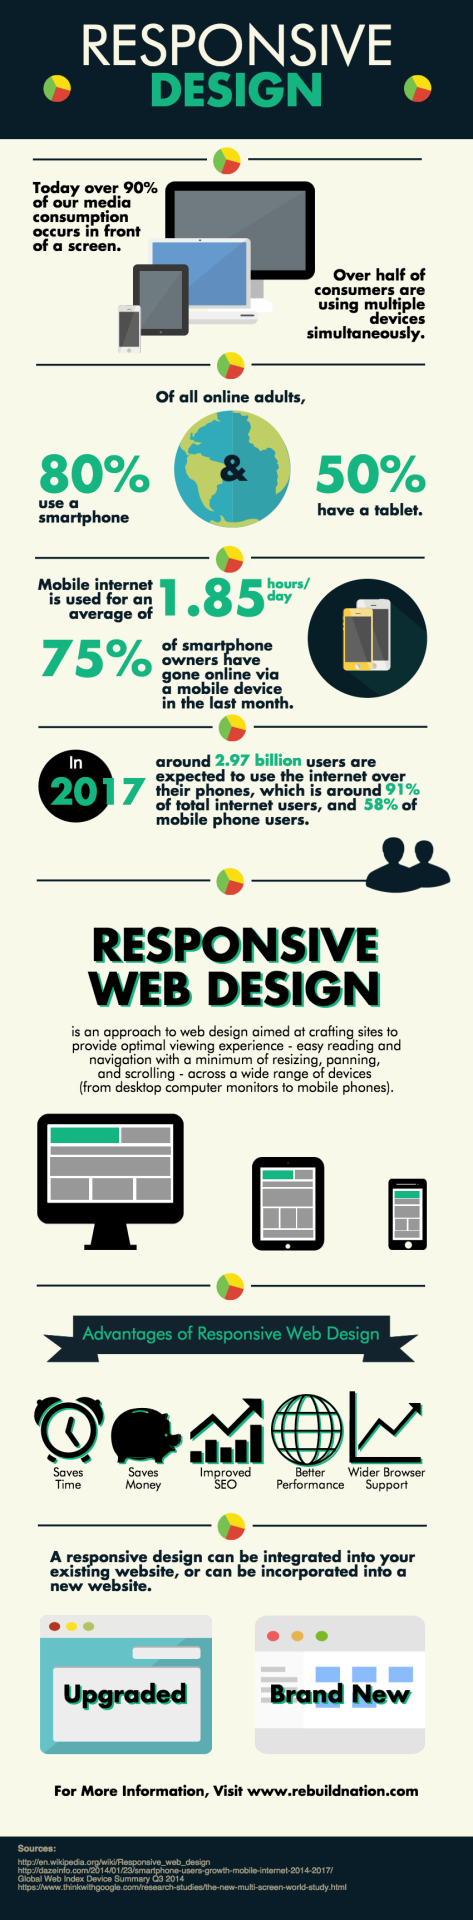 Responsive Design for Newbies [Infographic]